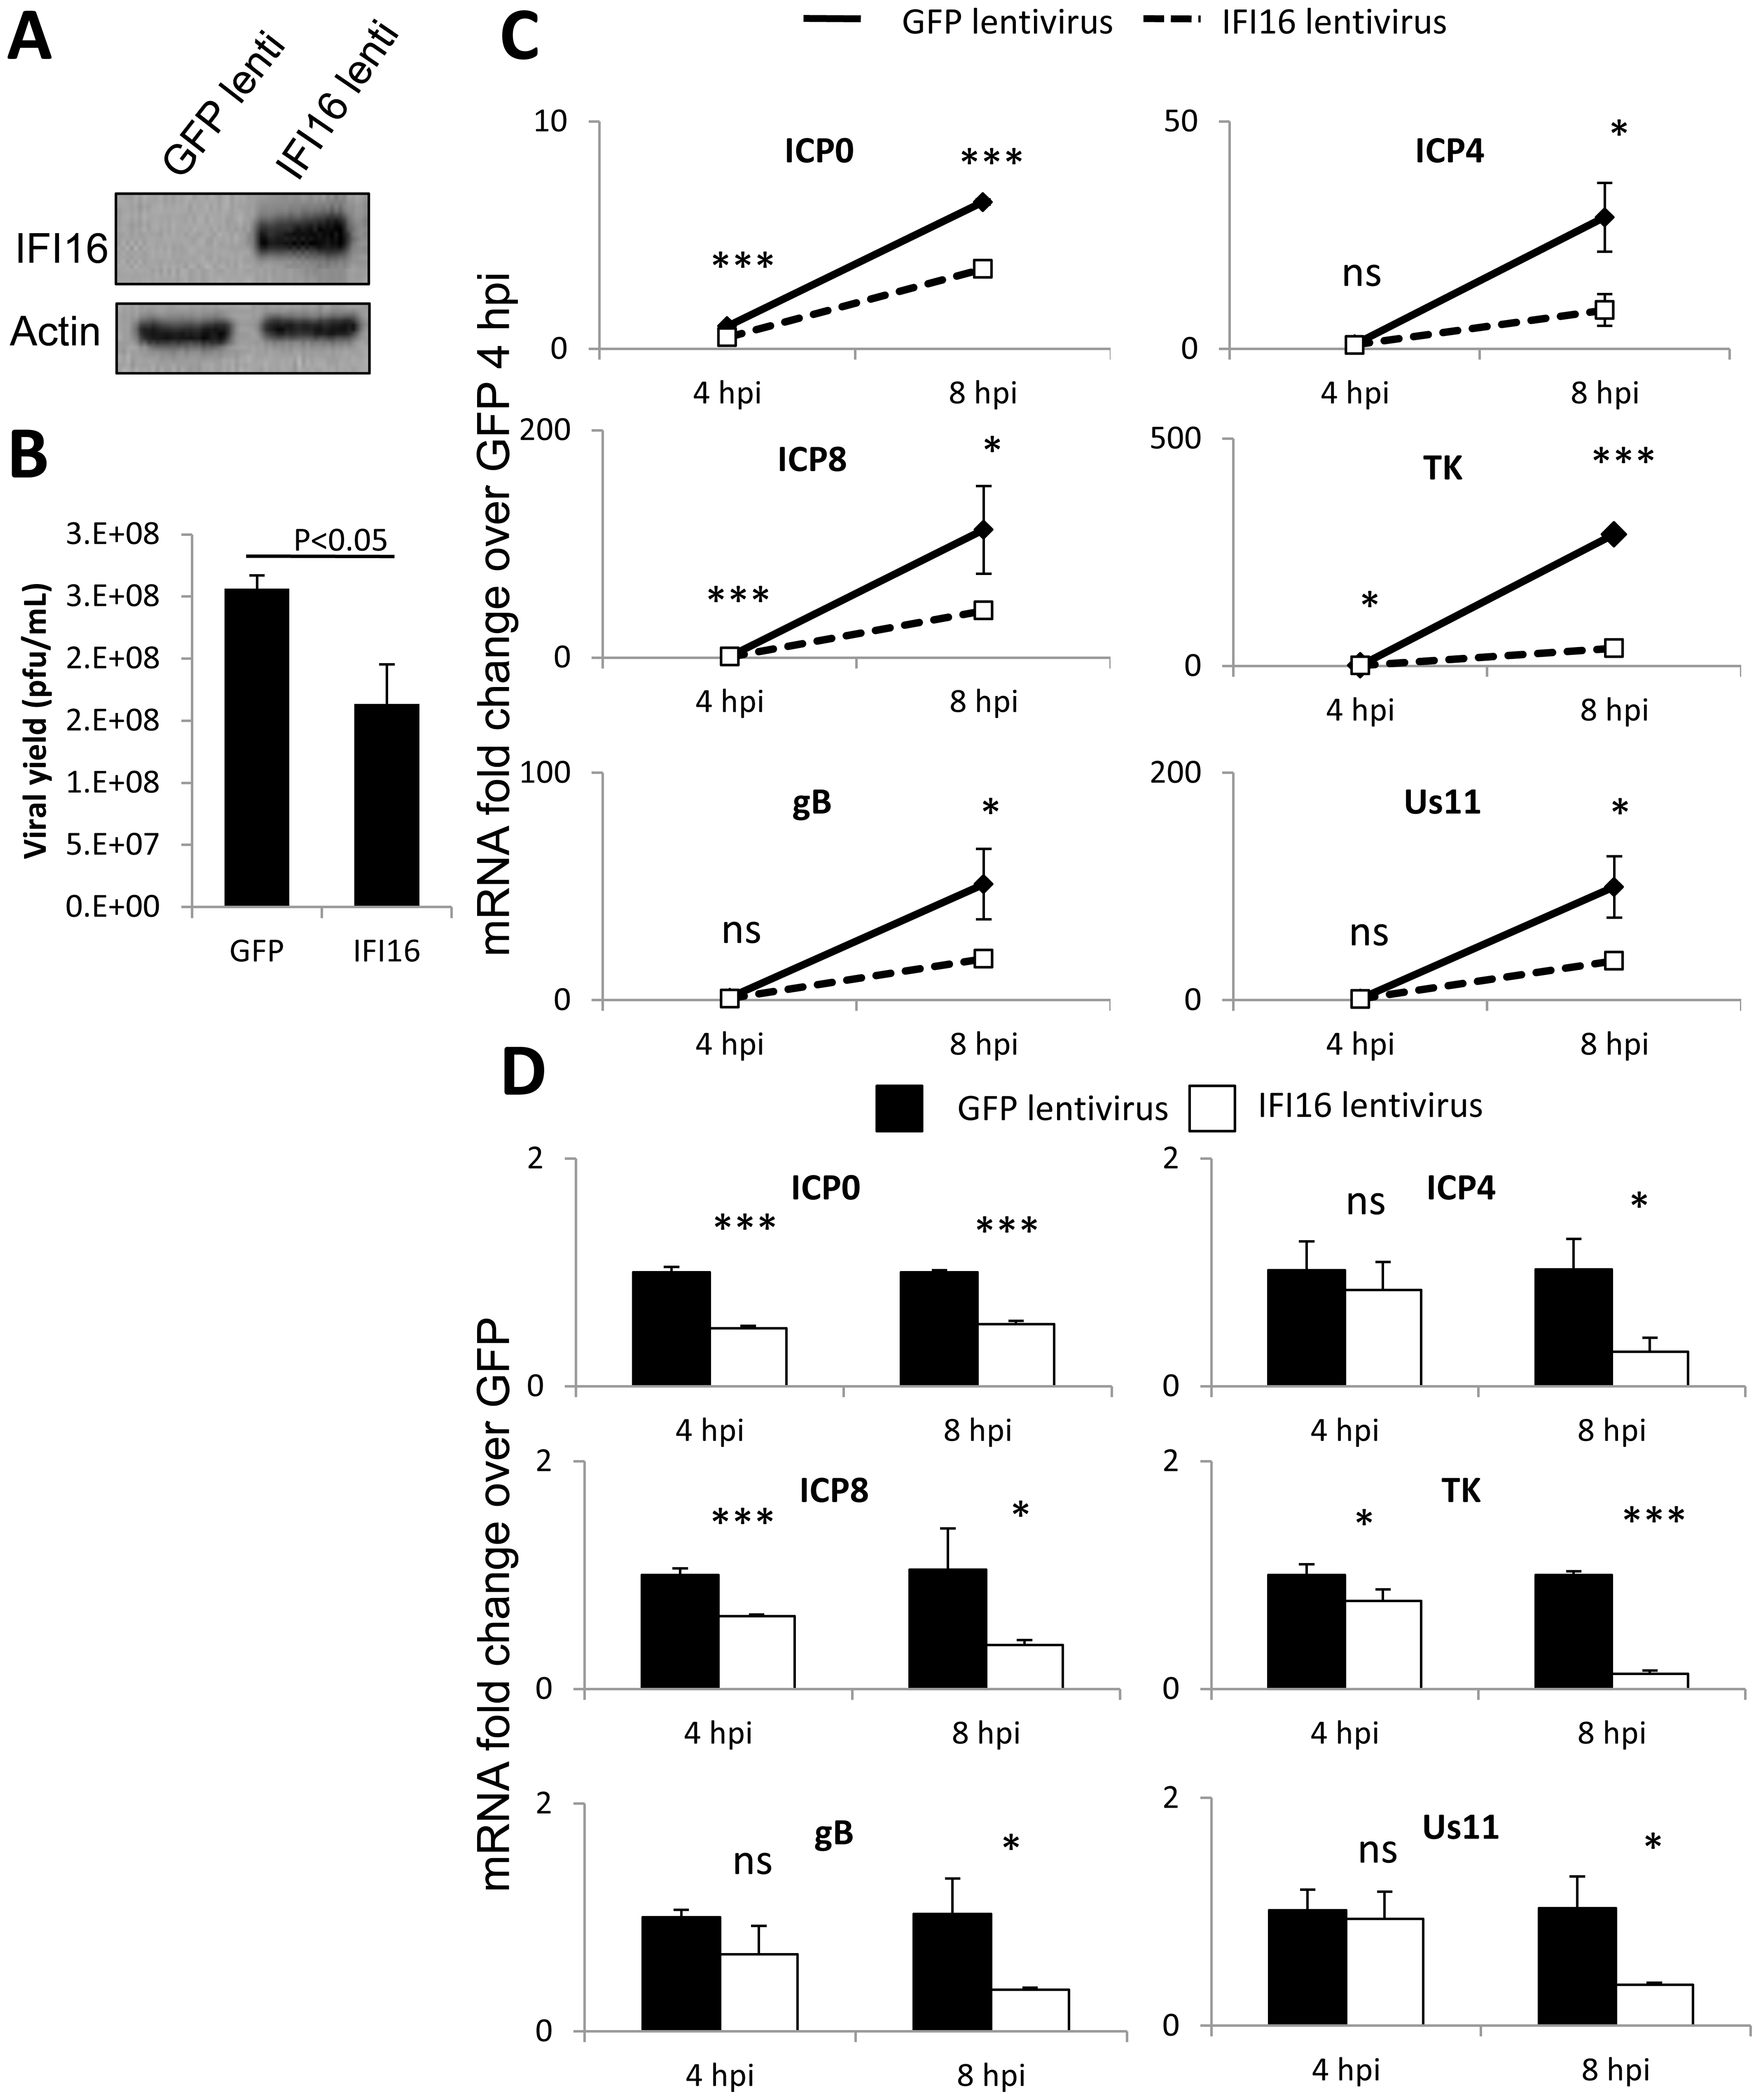 Effect of IFI16 overexpression on HSV-1 gene expression, replication and viral yield in MCF7 cells.